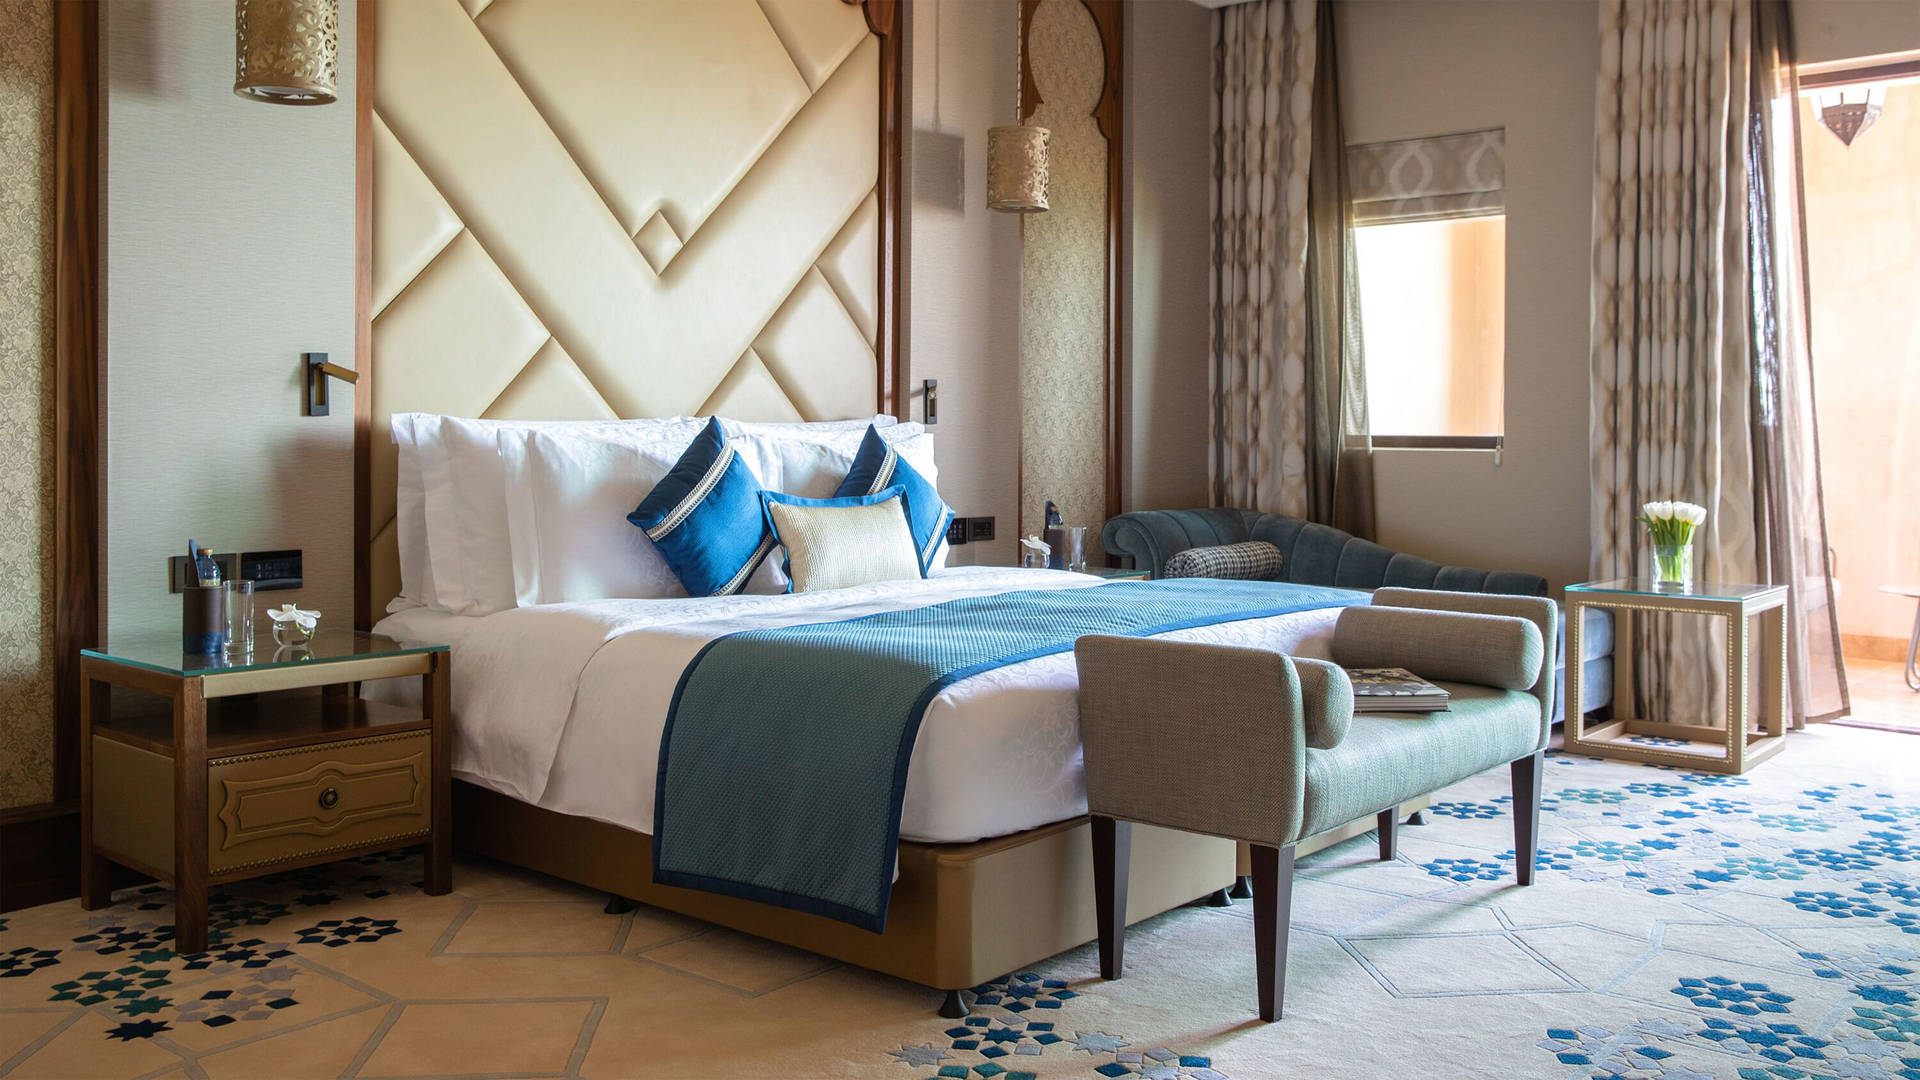 Presidential Suite Bedroom at Jumeirah Al Qasr